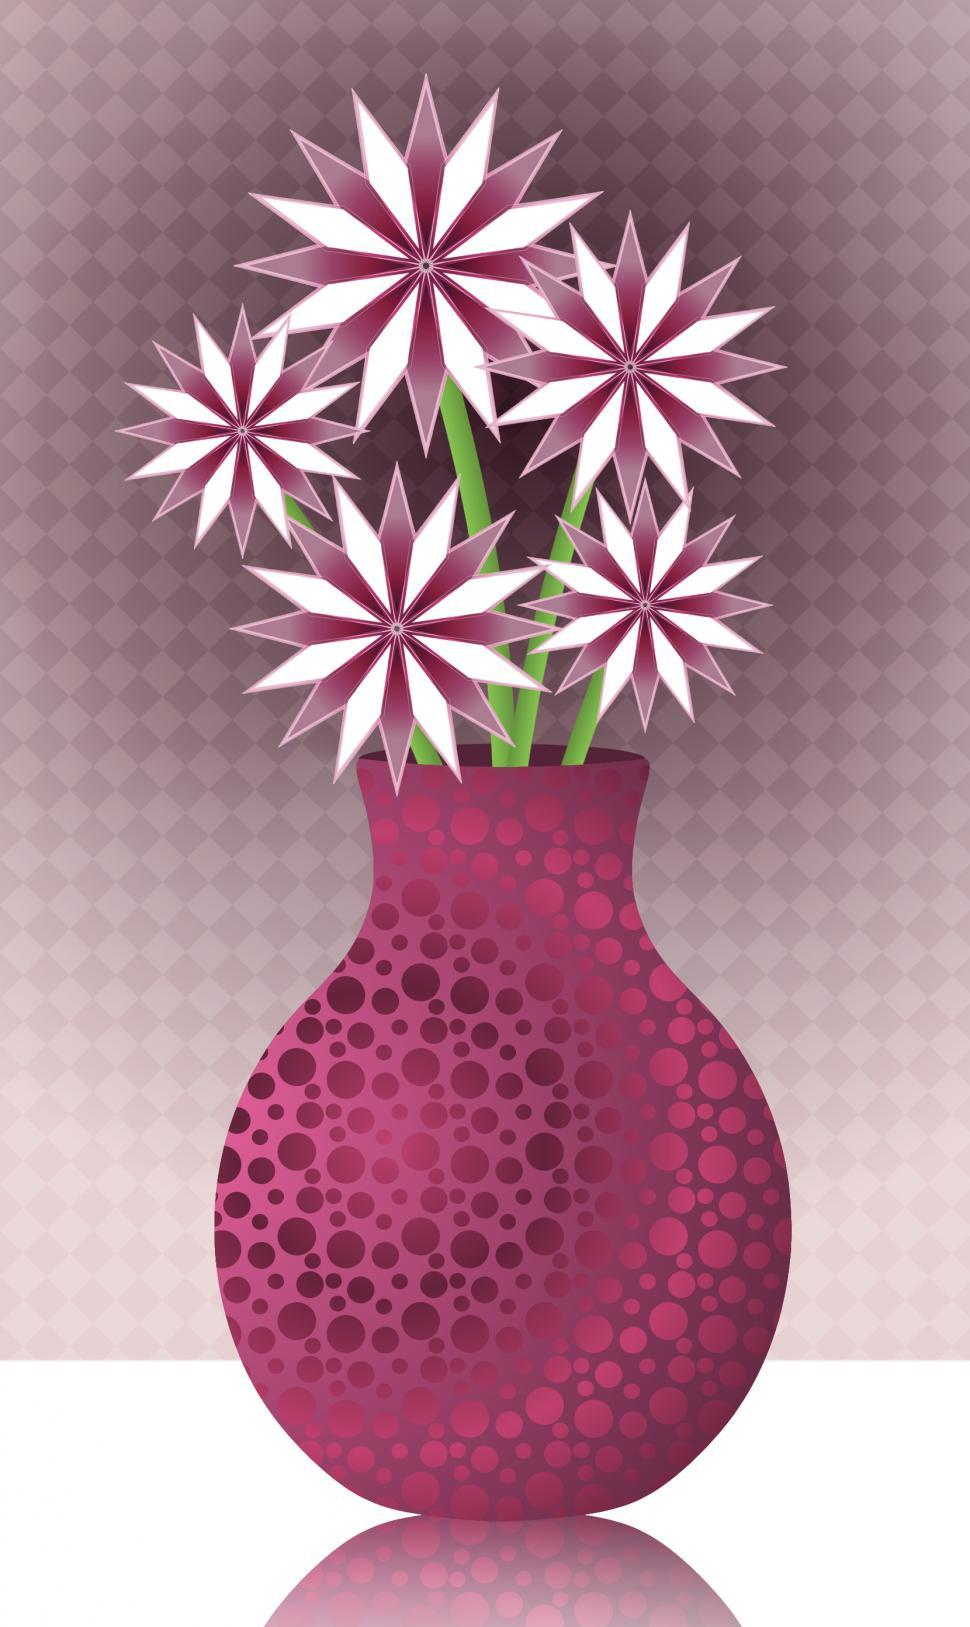 Download Free Stock Photo of  Pink and White Flowers in Vase